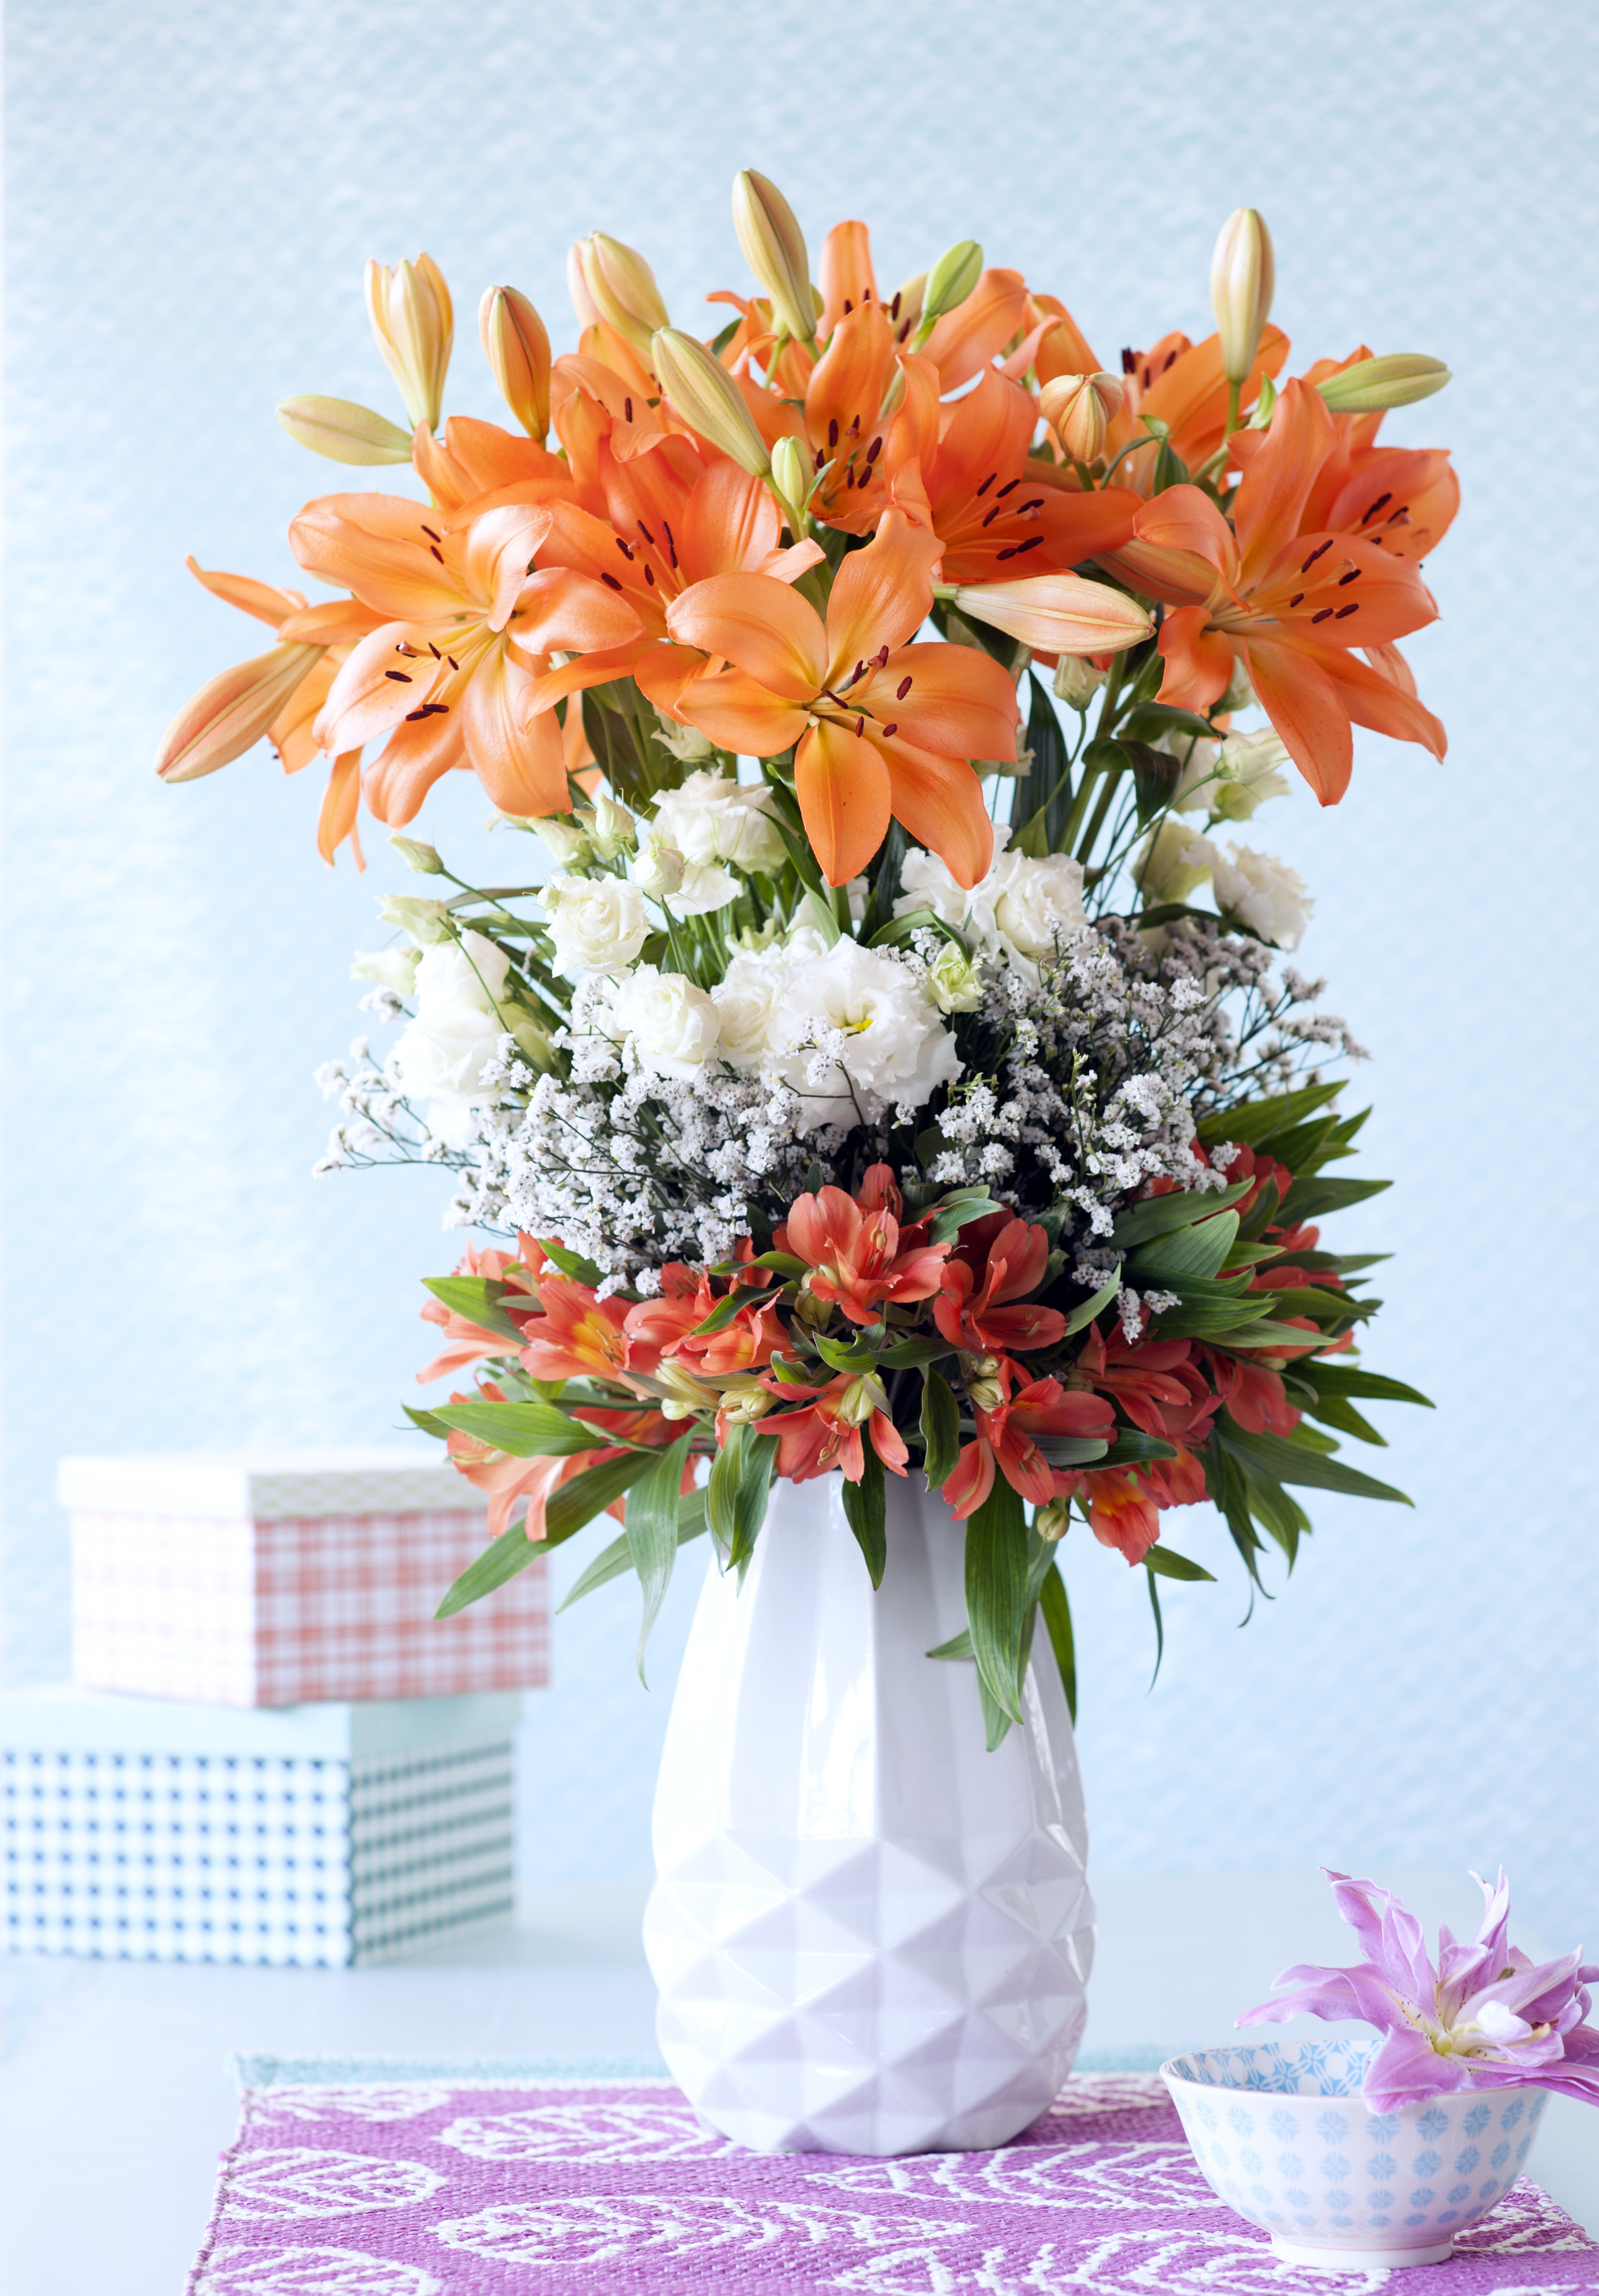 Top tips for tall vases | Funny how flowers do that